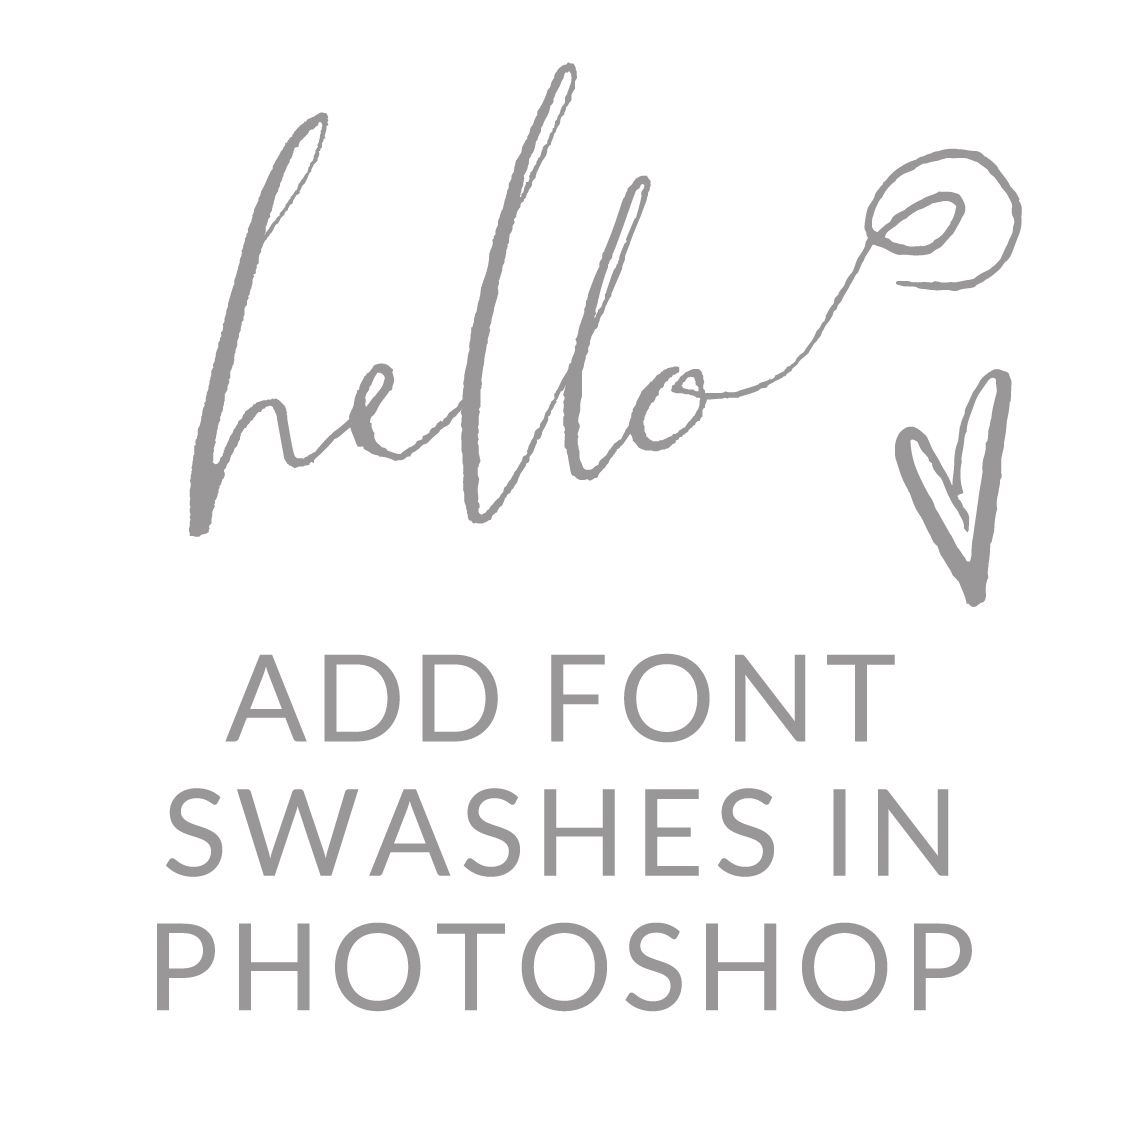 How to add swashes to fonts in photoshop photoshop tips this is a quick tutorial on how to add swashes to fonts in photoshop i just love a calligraphy font with some swashes heres how to add em in photoshop ccuart Choice Image